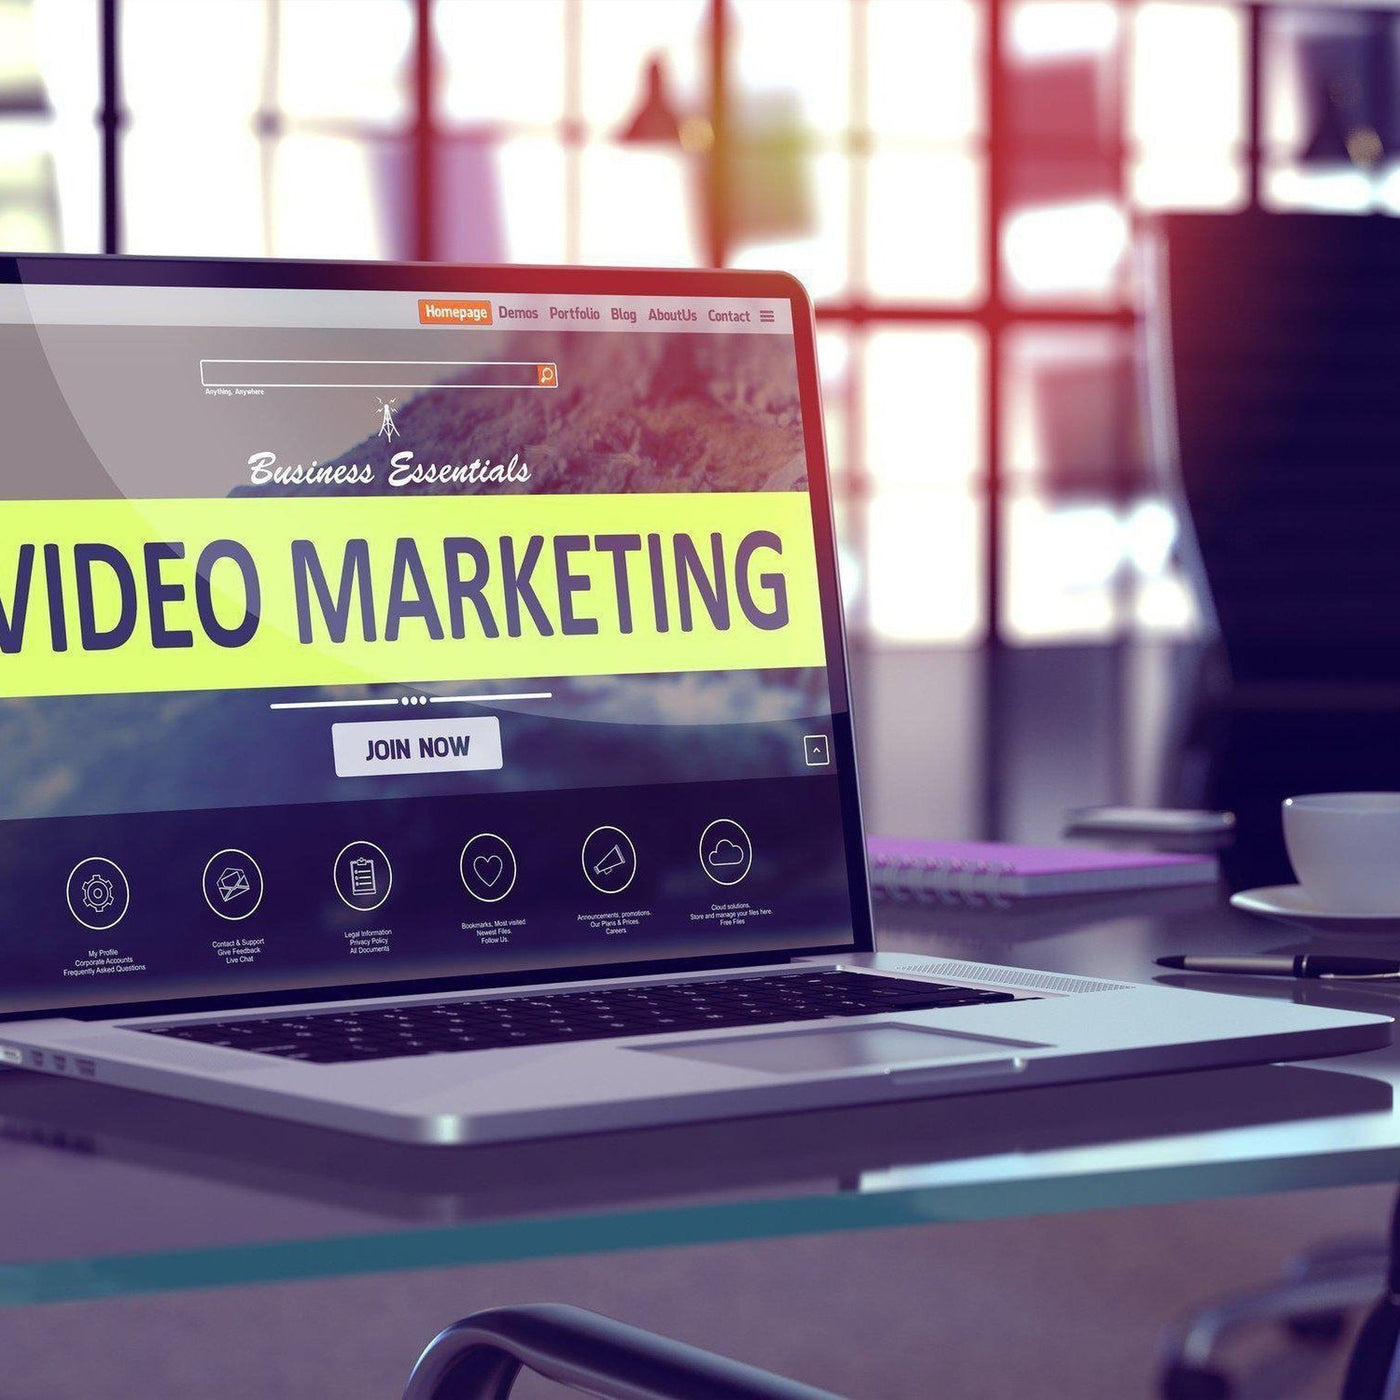 Vape Ads & More: 8 Ways to Use Video Marketing for Your Vape Shop-Vape In The Box